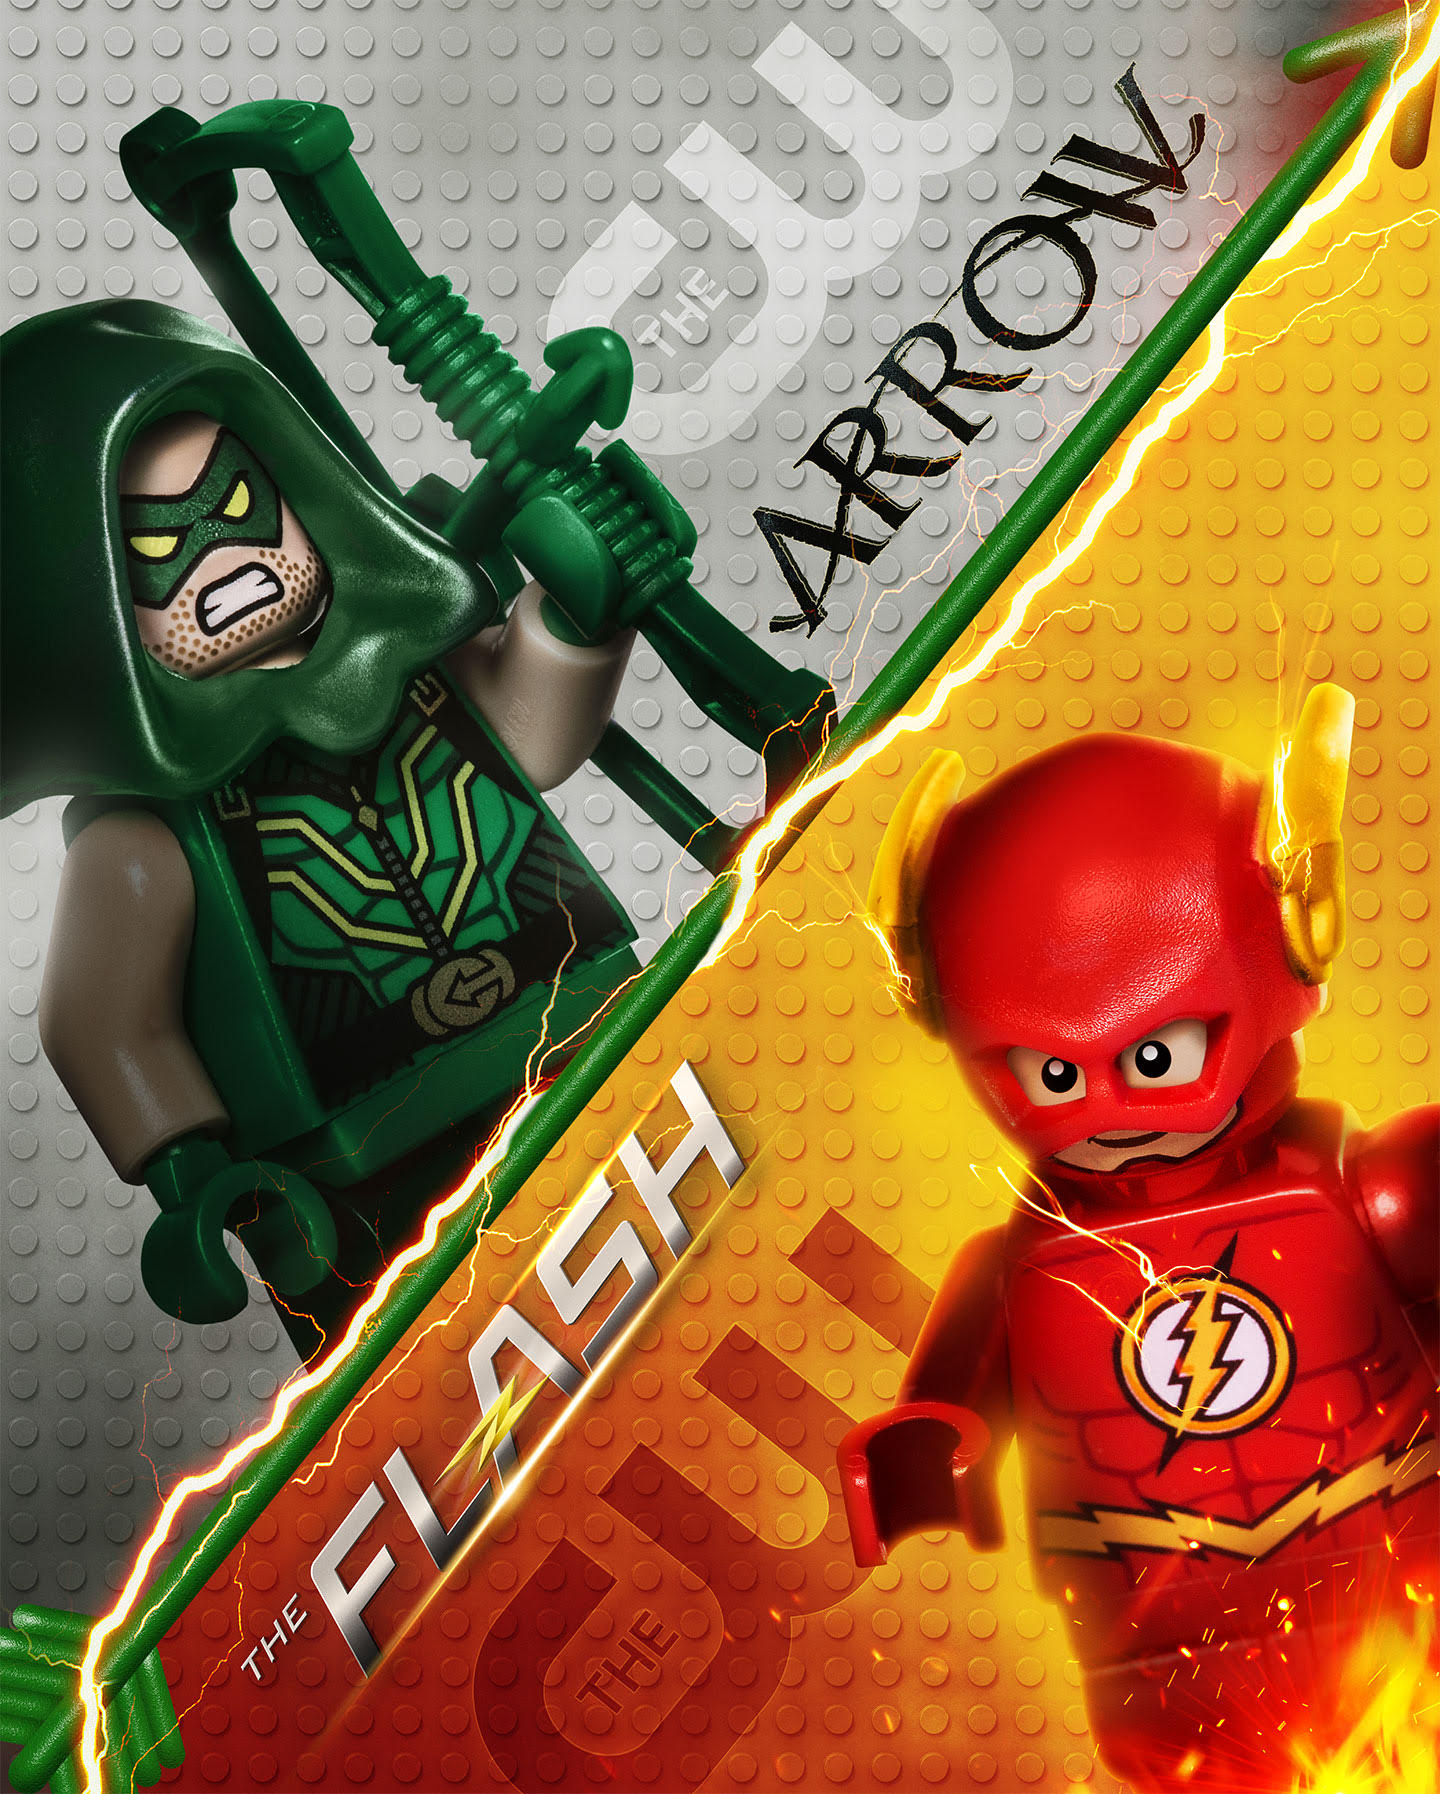 Warner Bros  Television Group Celebrates  The LEGO     Batman Movie     Television Group Celebrates  The LEGO     Batman Movie  With Super Sized  Studio Billboards  and LEGO Batman Crashes The CW s Super Hero Lineup